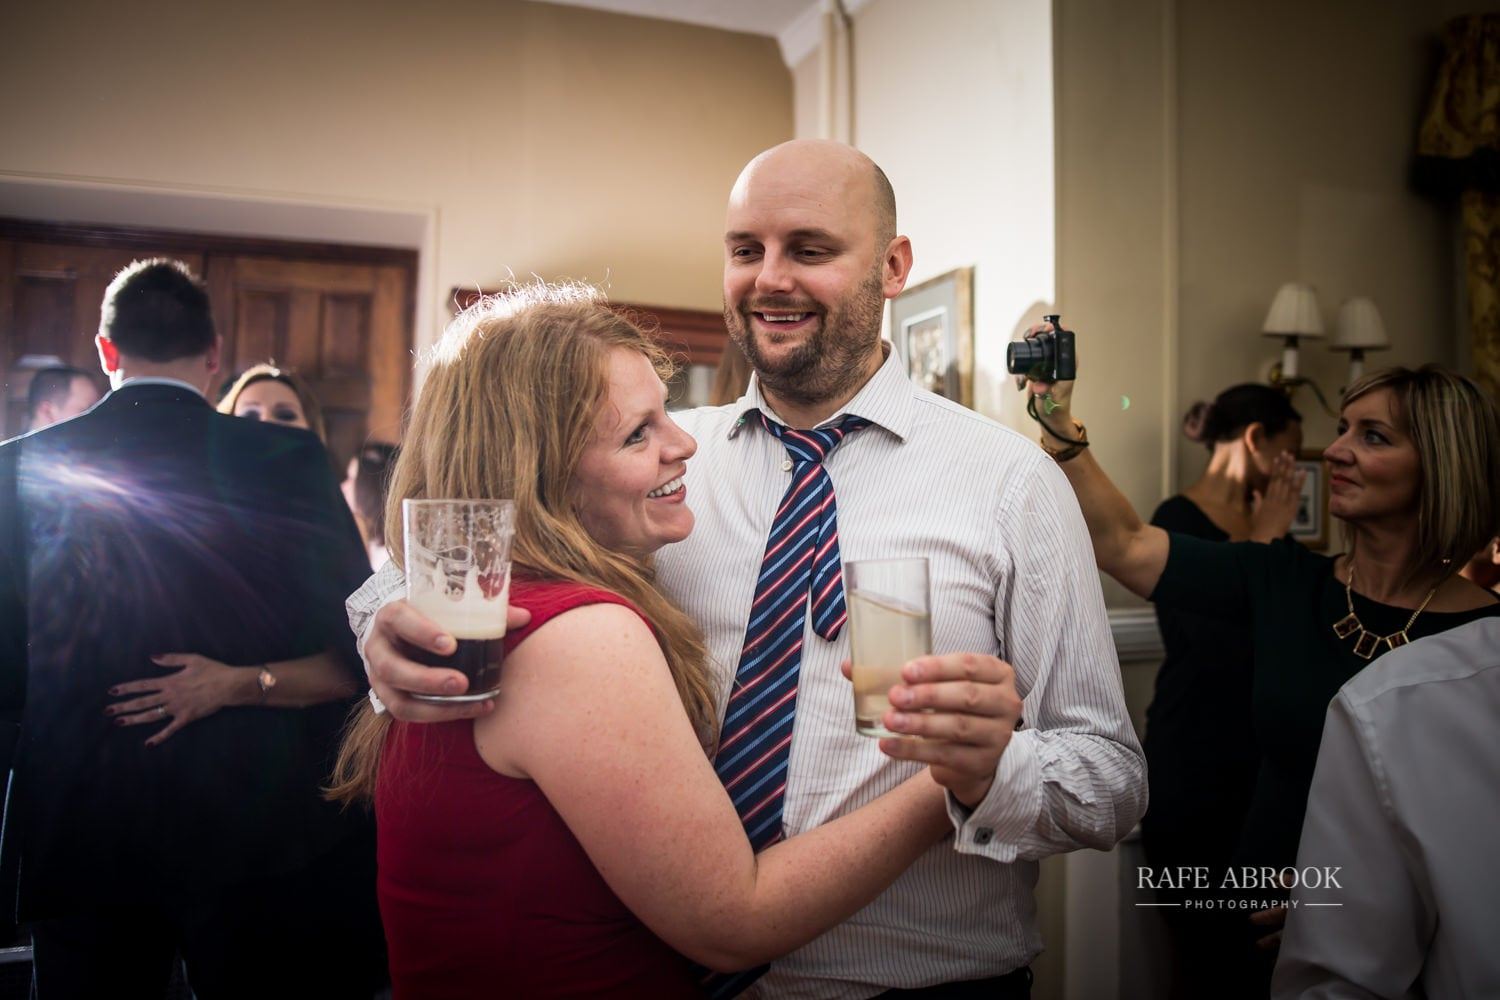 woodland manor hotel clapham bedford wedding hertfordshire wedding photographer-1321.jpg